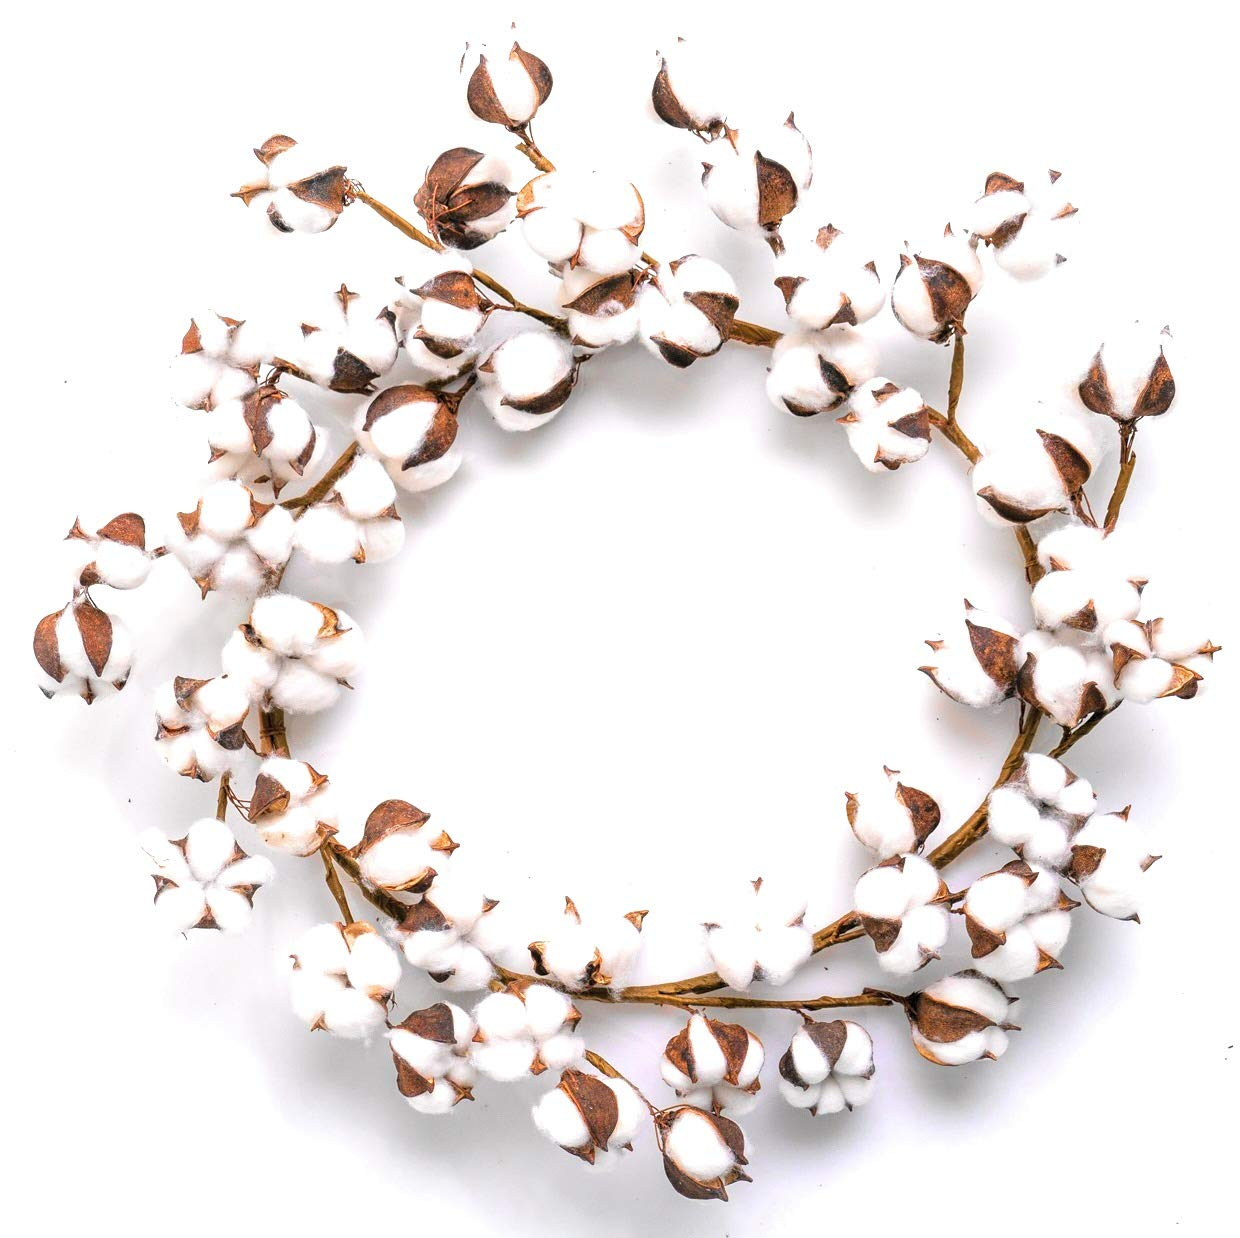 Farmhouse Cotton Wreath for Front Door, 18-24 inch Decor Wall Hanger w/Adjustable Stems (50 Cotton bolls)